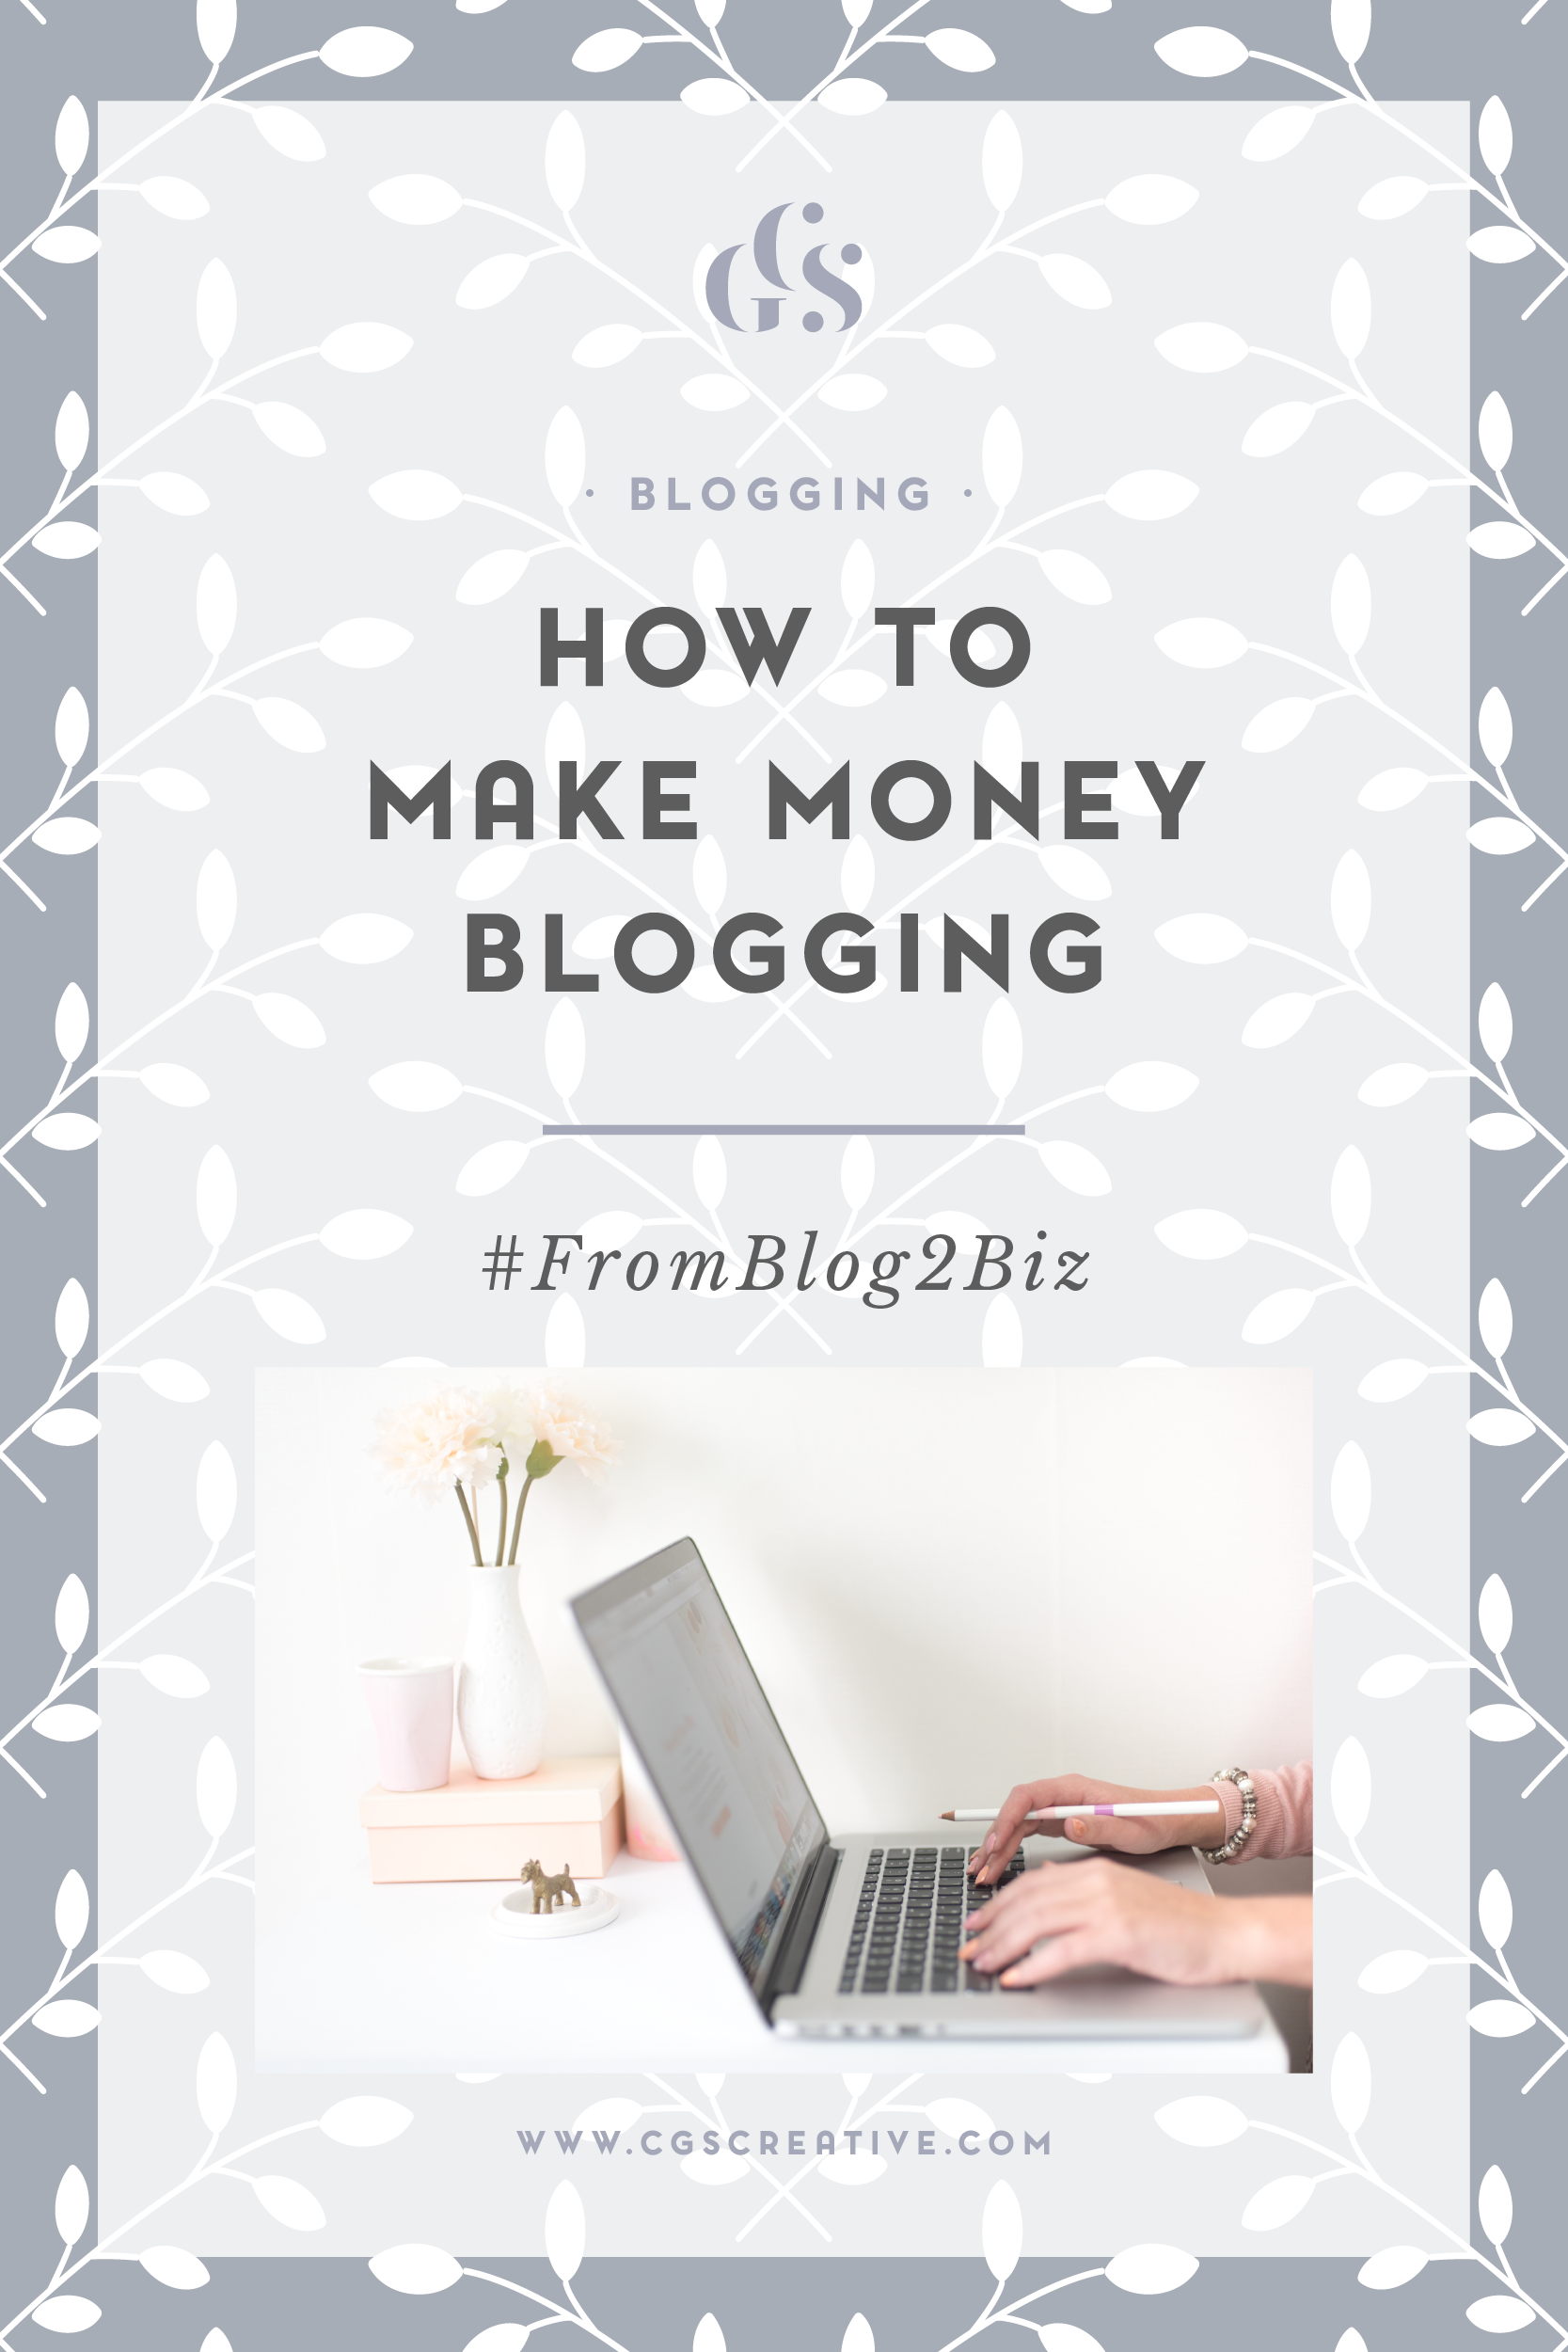 #FromBlog2Biz How to make money blogging